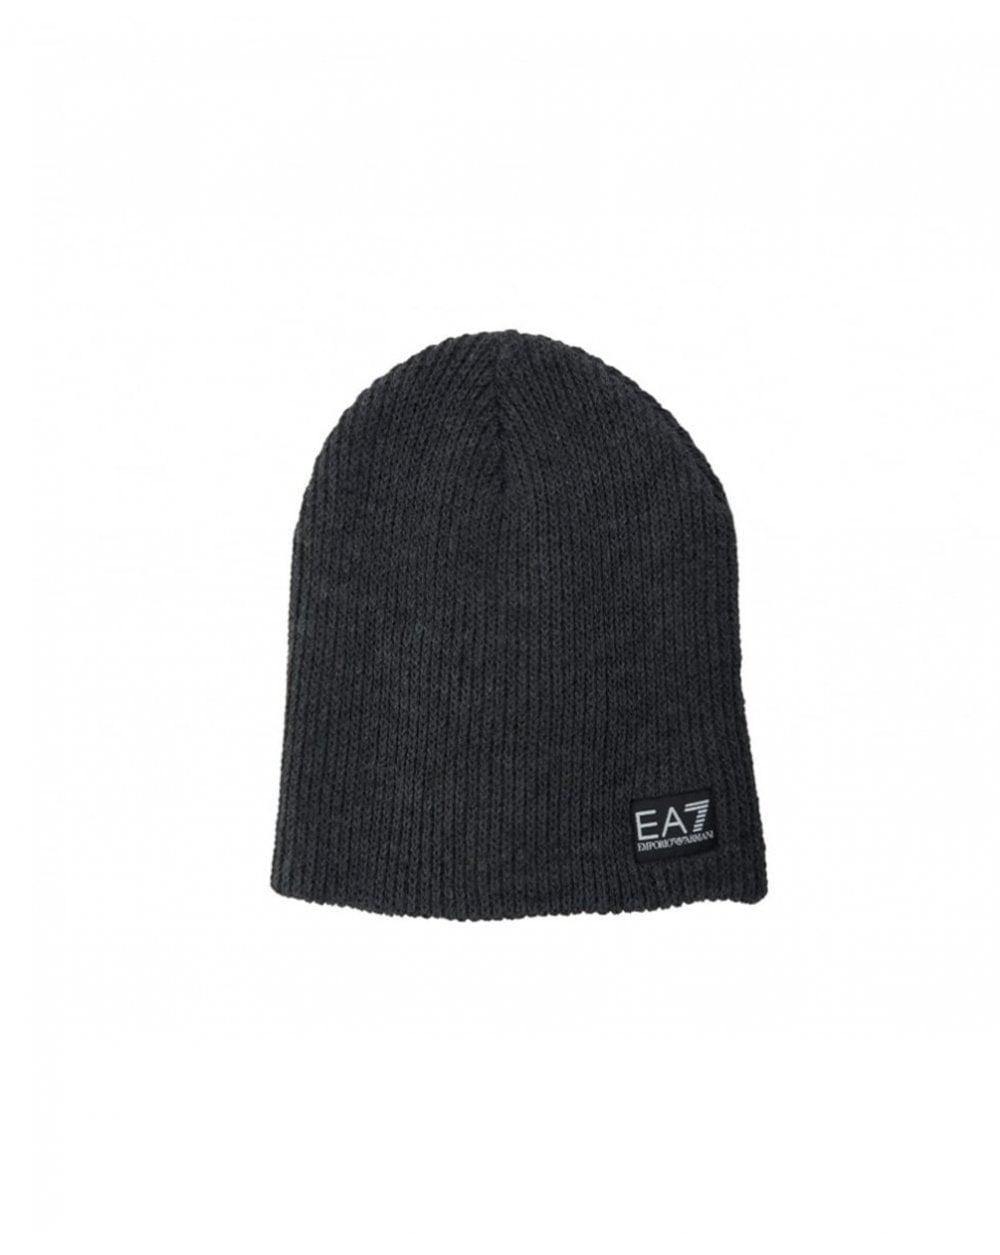 a313d7df92b Ea7 Train Lux Beanie Hat in Gray for Men - Lyst